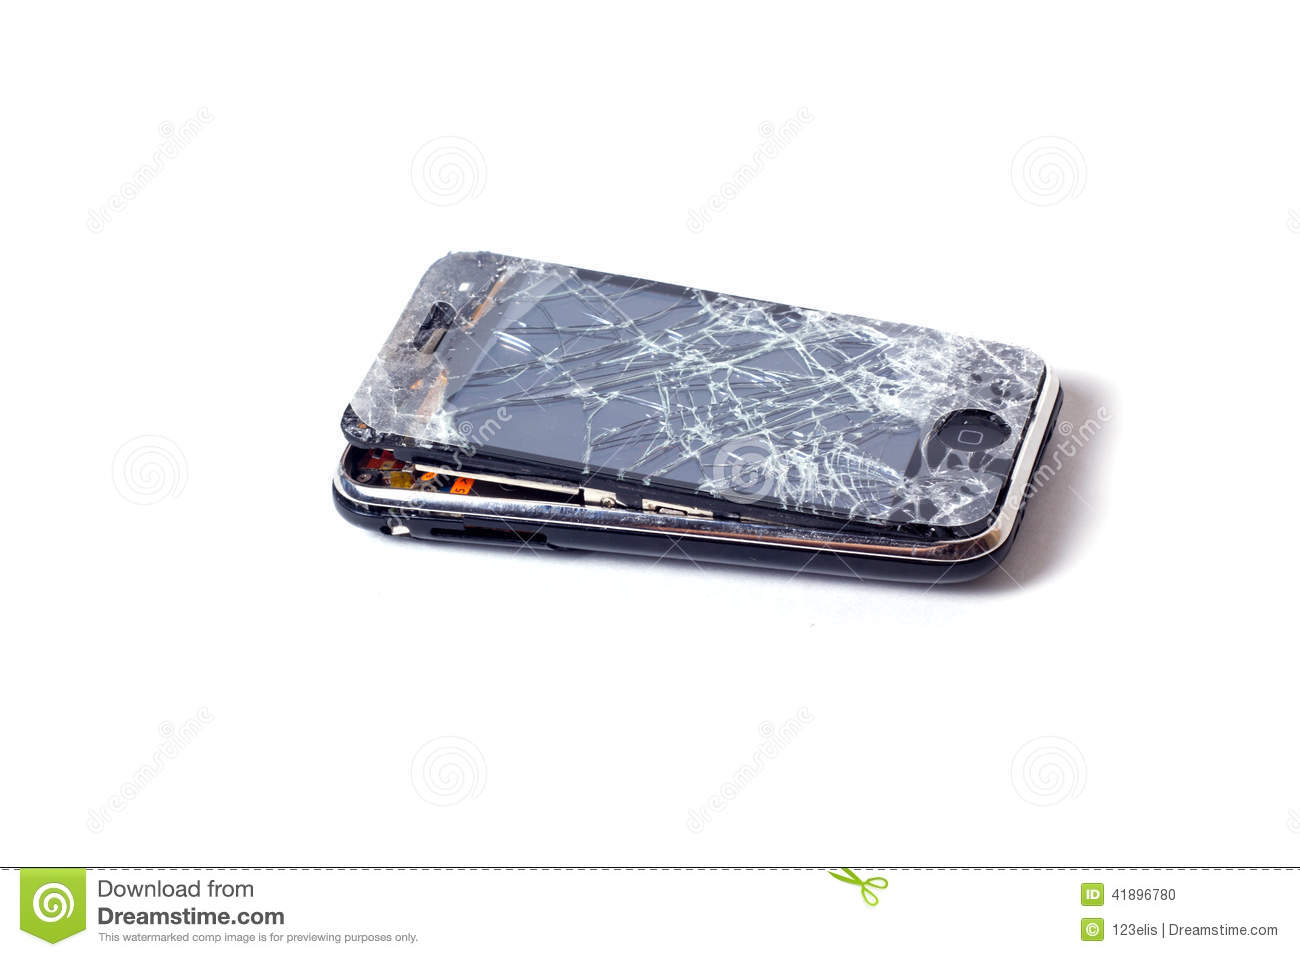 Apple Iphone Smashed Screen